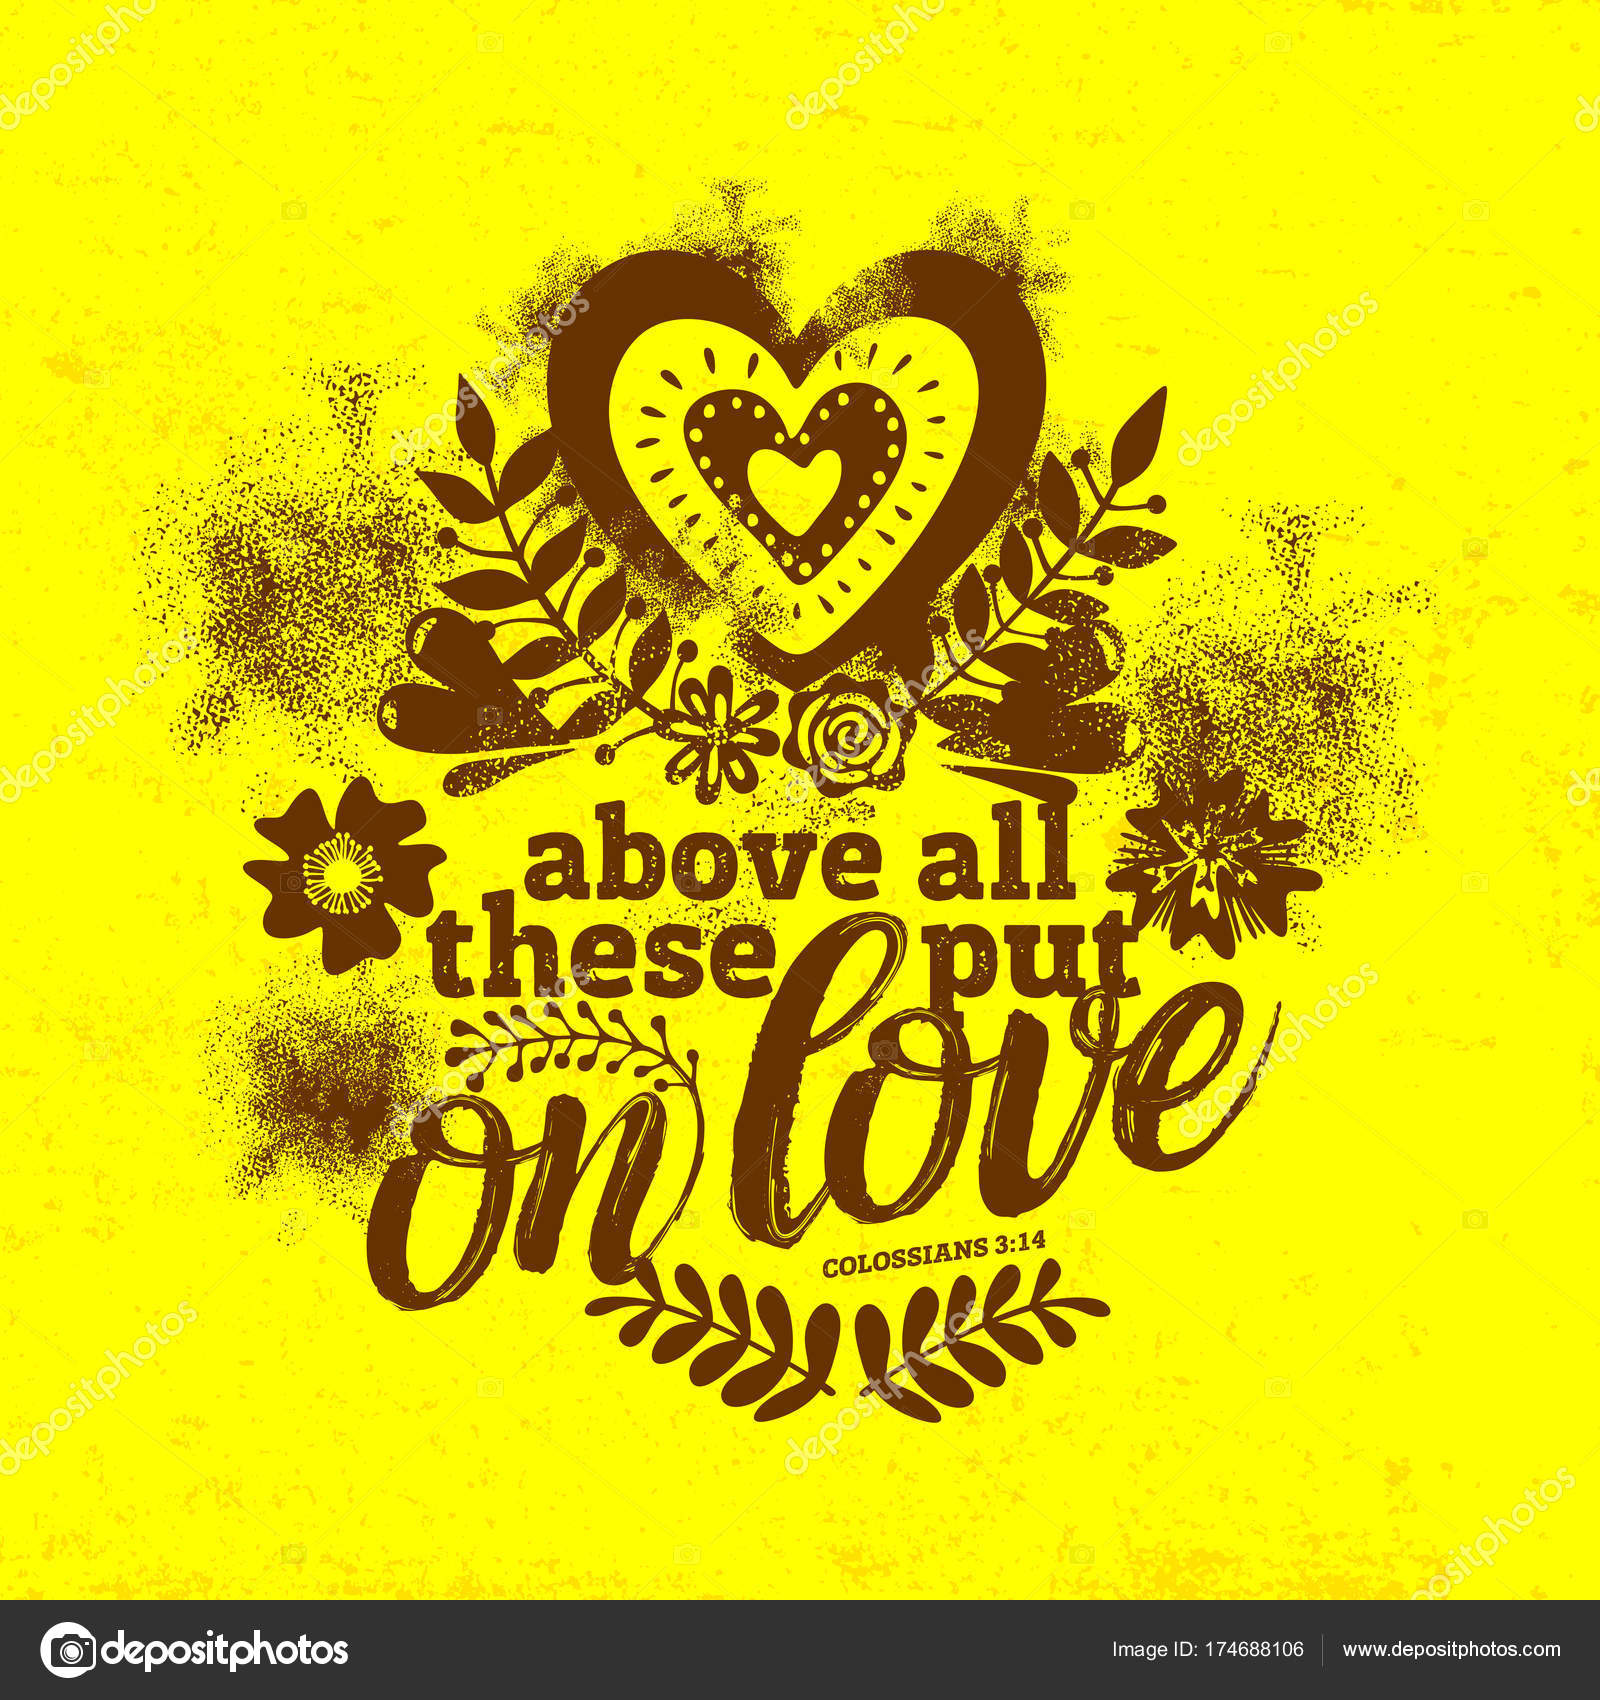 And above all these is love